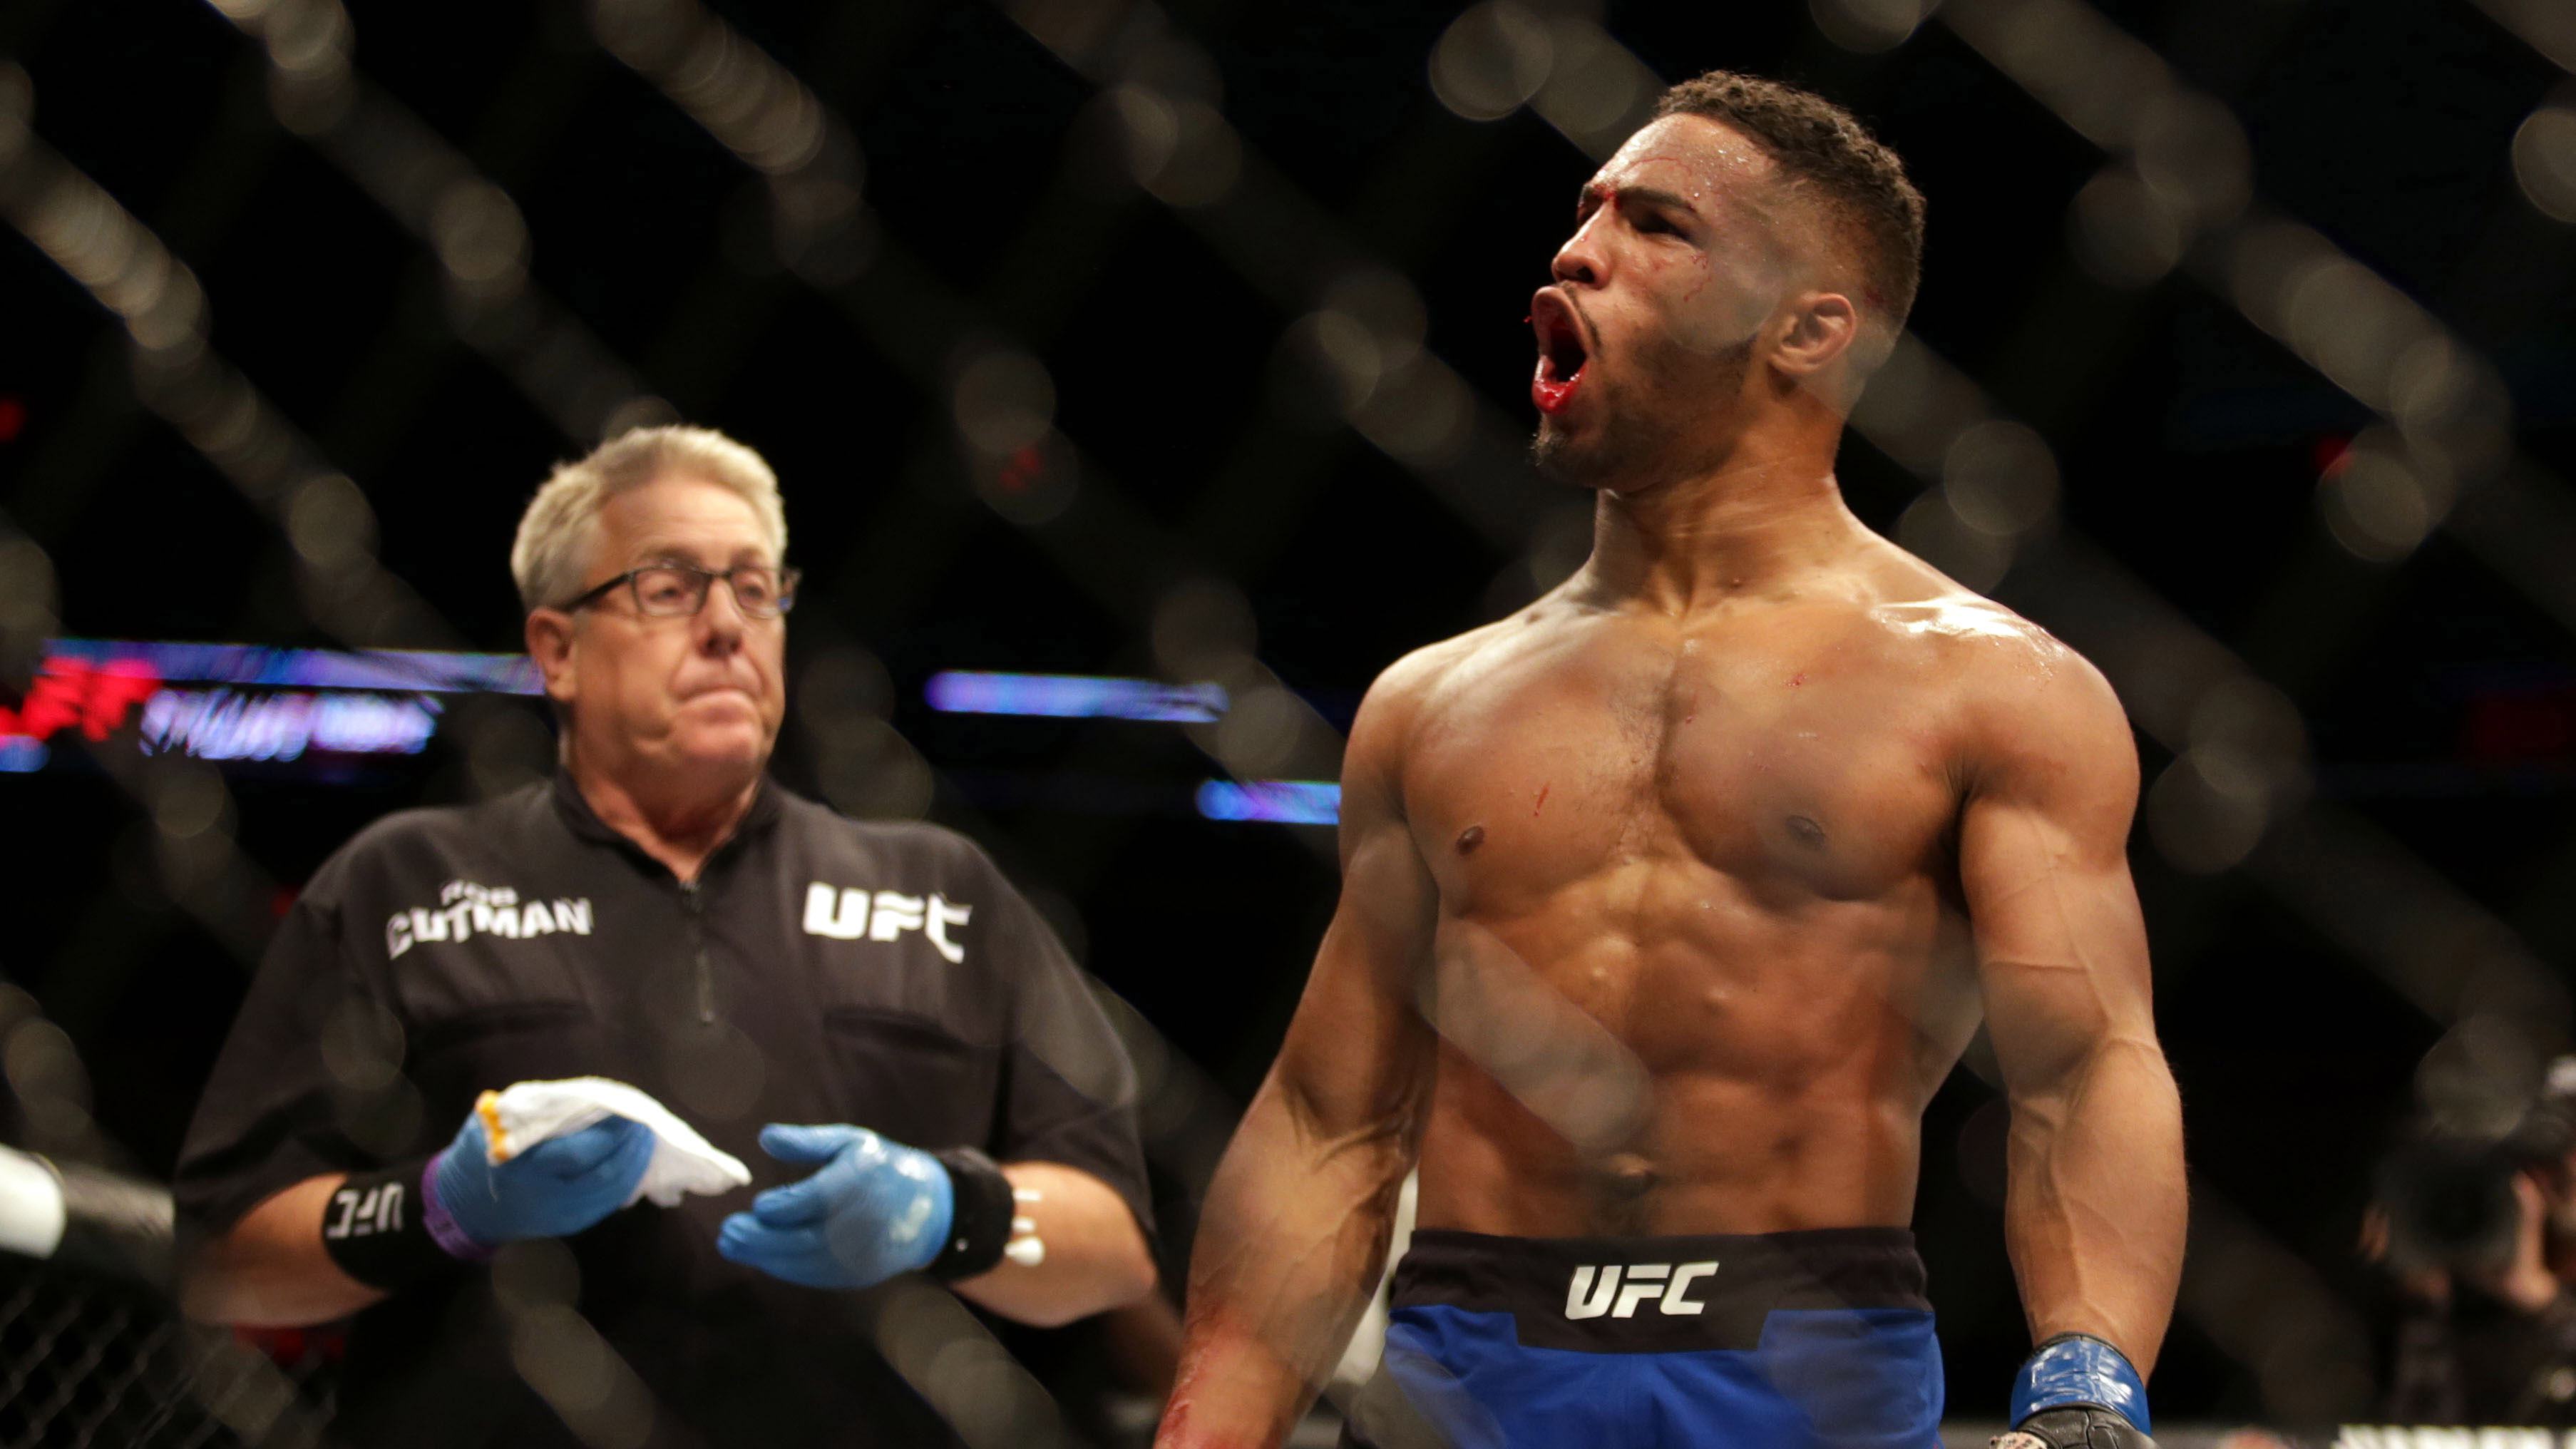 Jun 25, 2017; Oklahoma City, OK, USA; Kevin Lee (blue gloves) reacts after beating Michael Chiesa (red gloves) during UFC Fight Night at Chesapeake Energy Arena. Mandatory Credit: Sean Pokorny-USA TODAY Sports